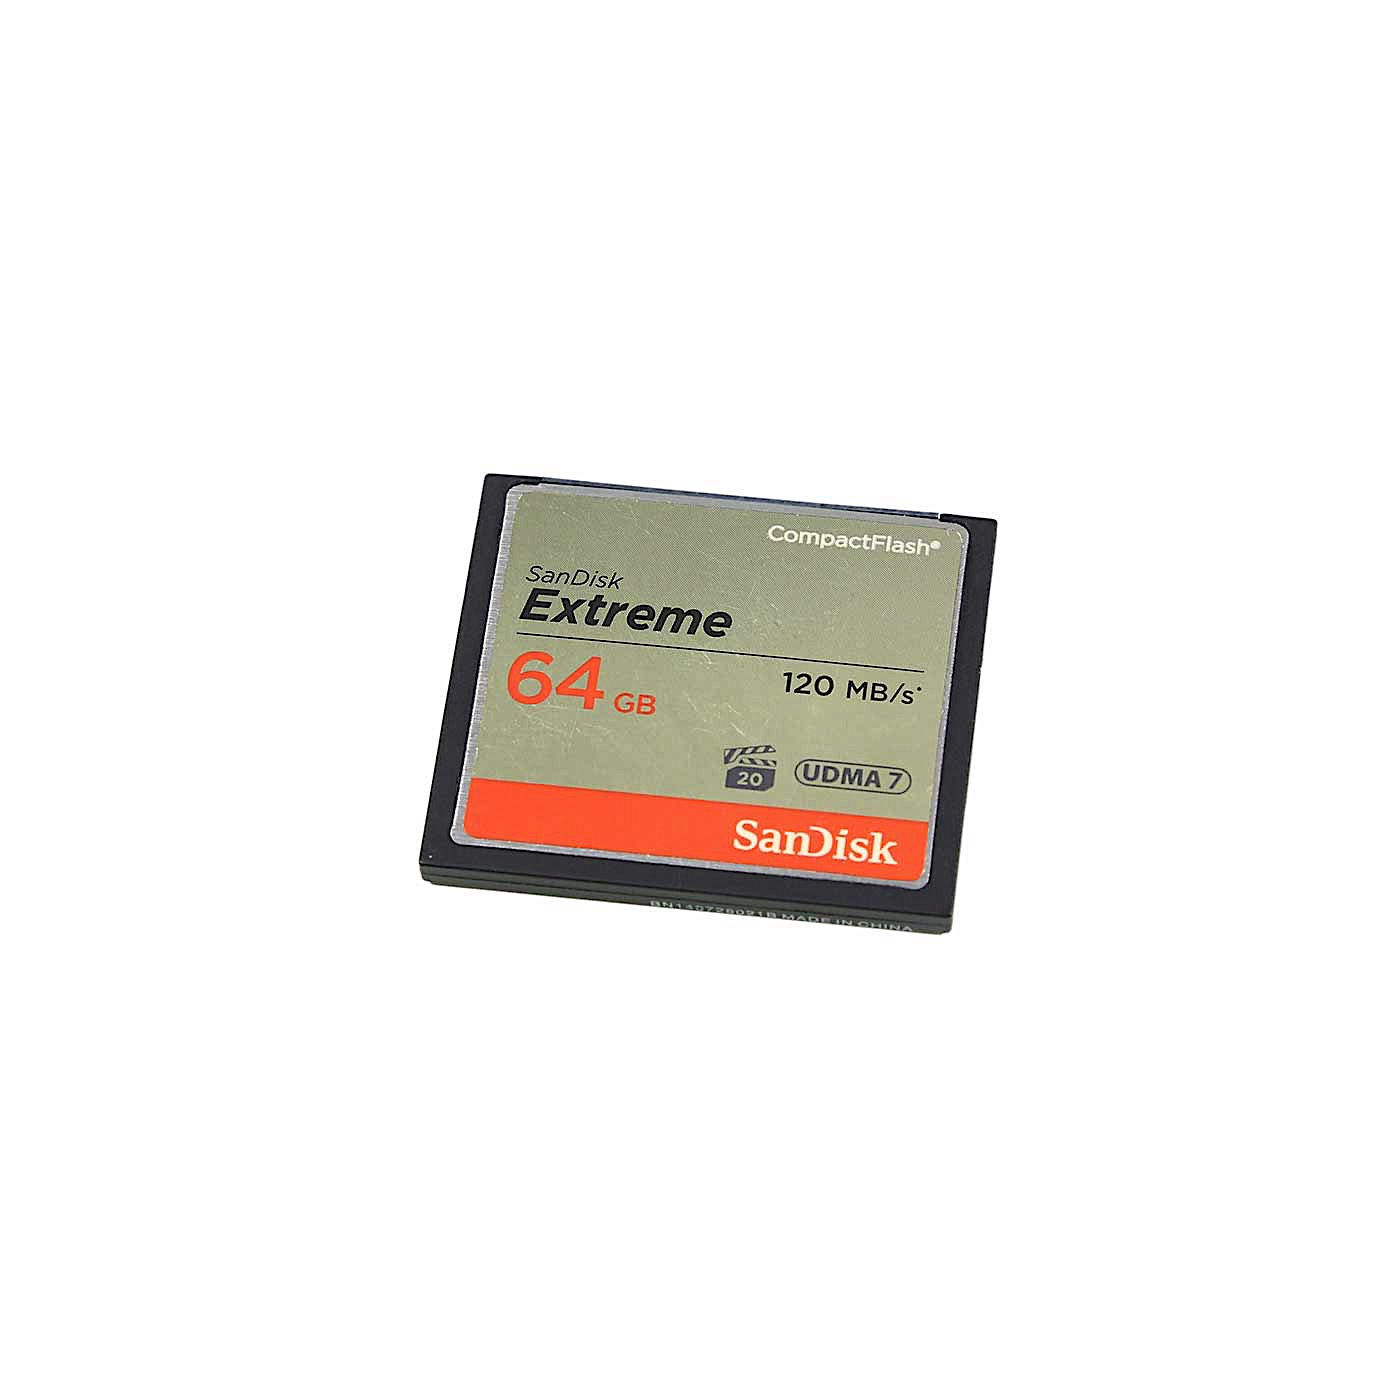 Sandisk 64GB 800x 120MB/s Compact Flash Card